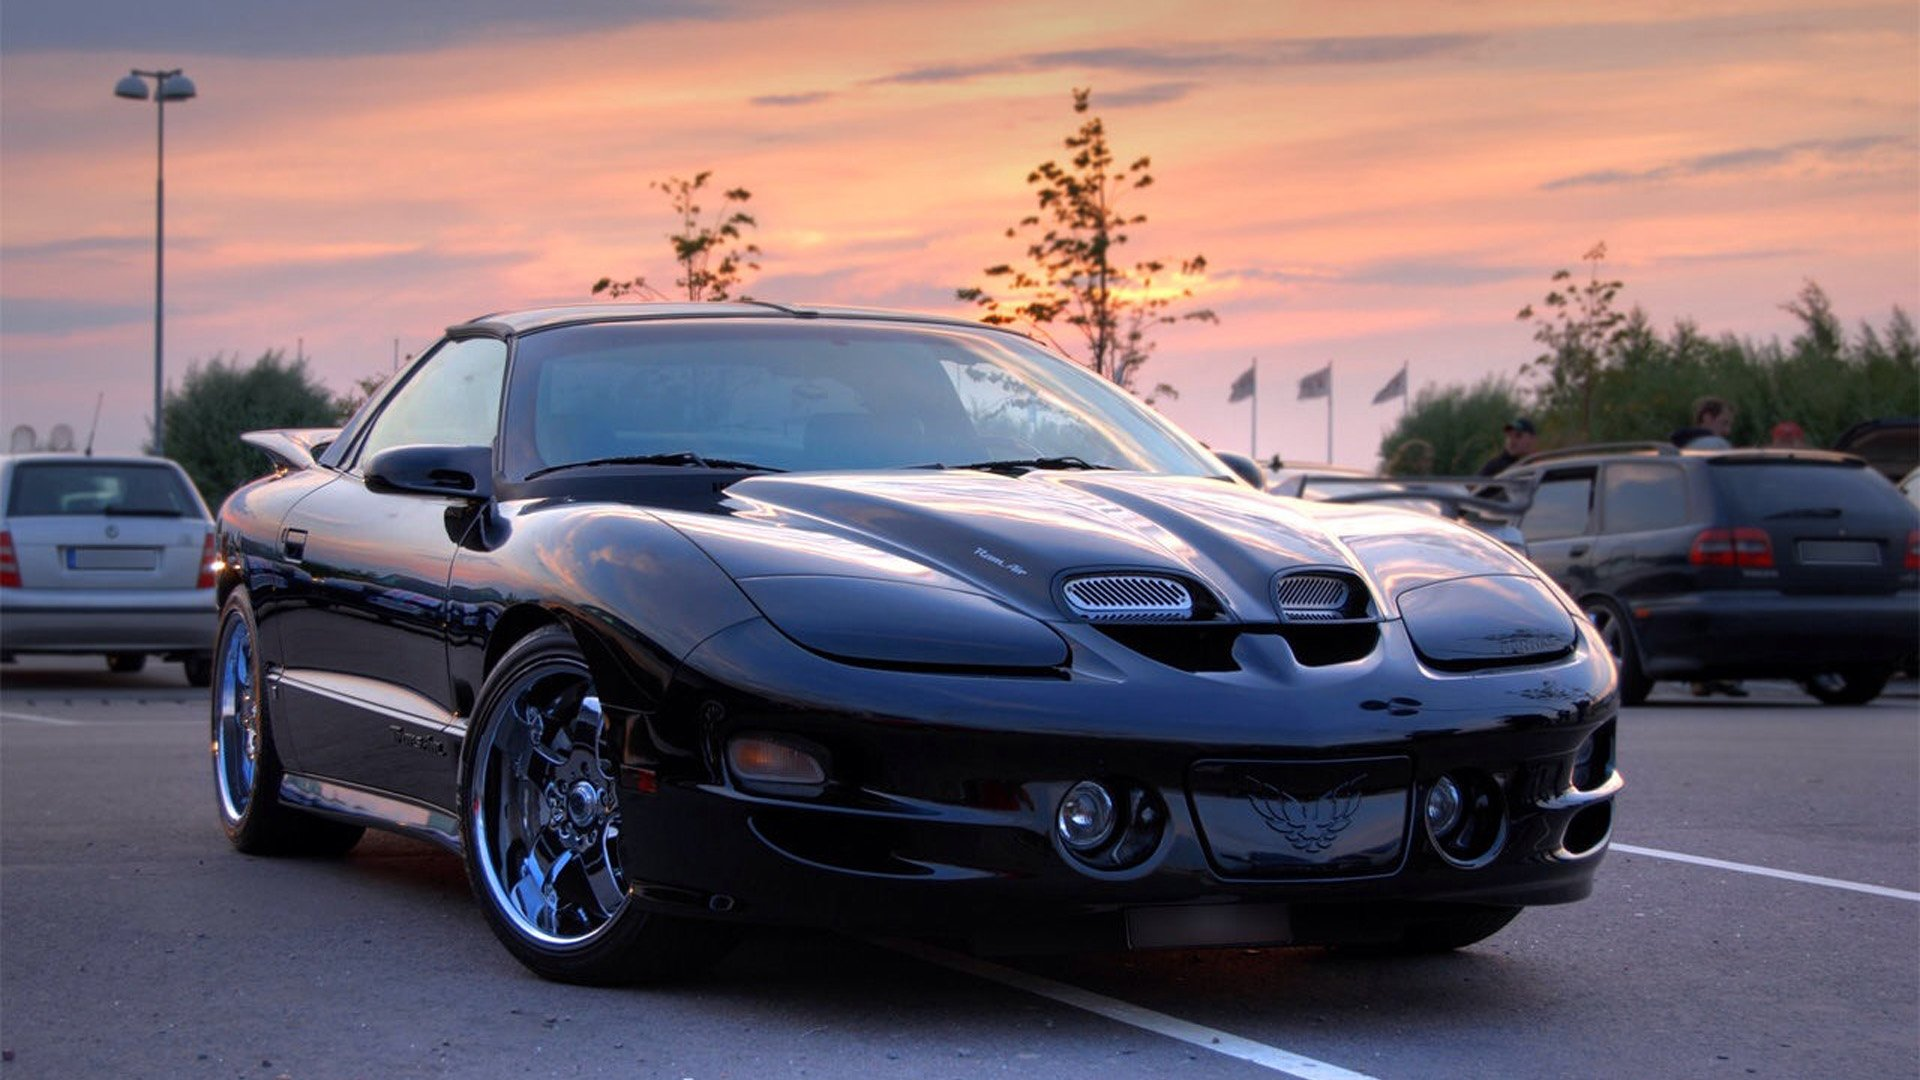 Wallpaper Wednesday Presented by Michelin Trans Am in Twilight 1920x1080